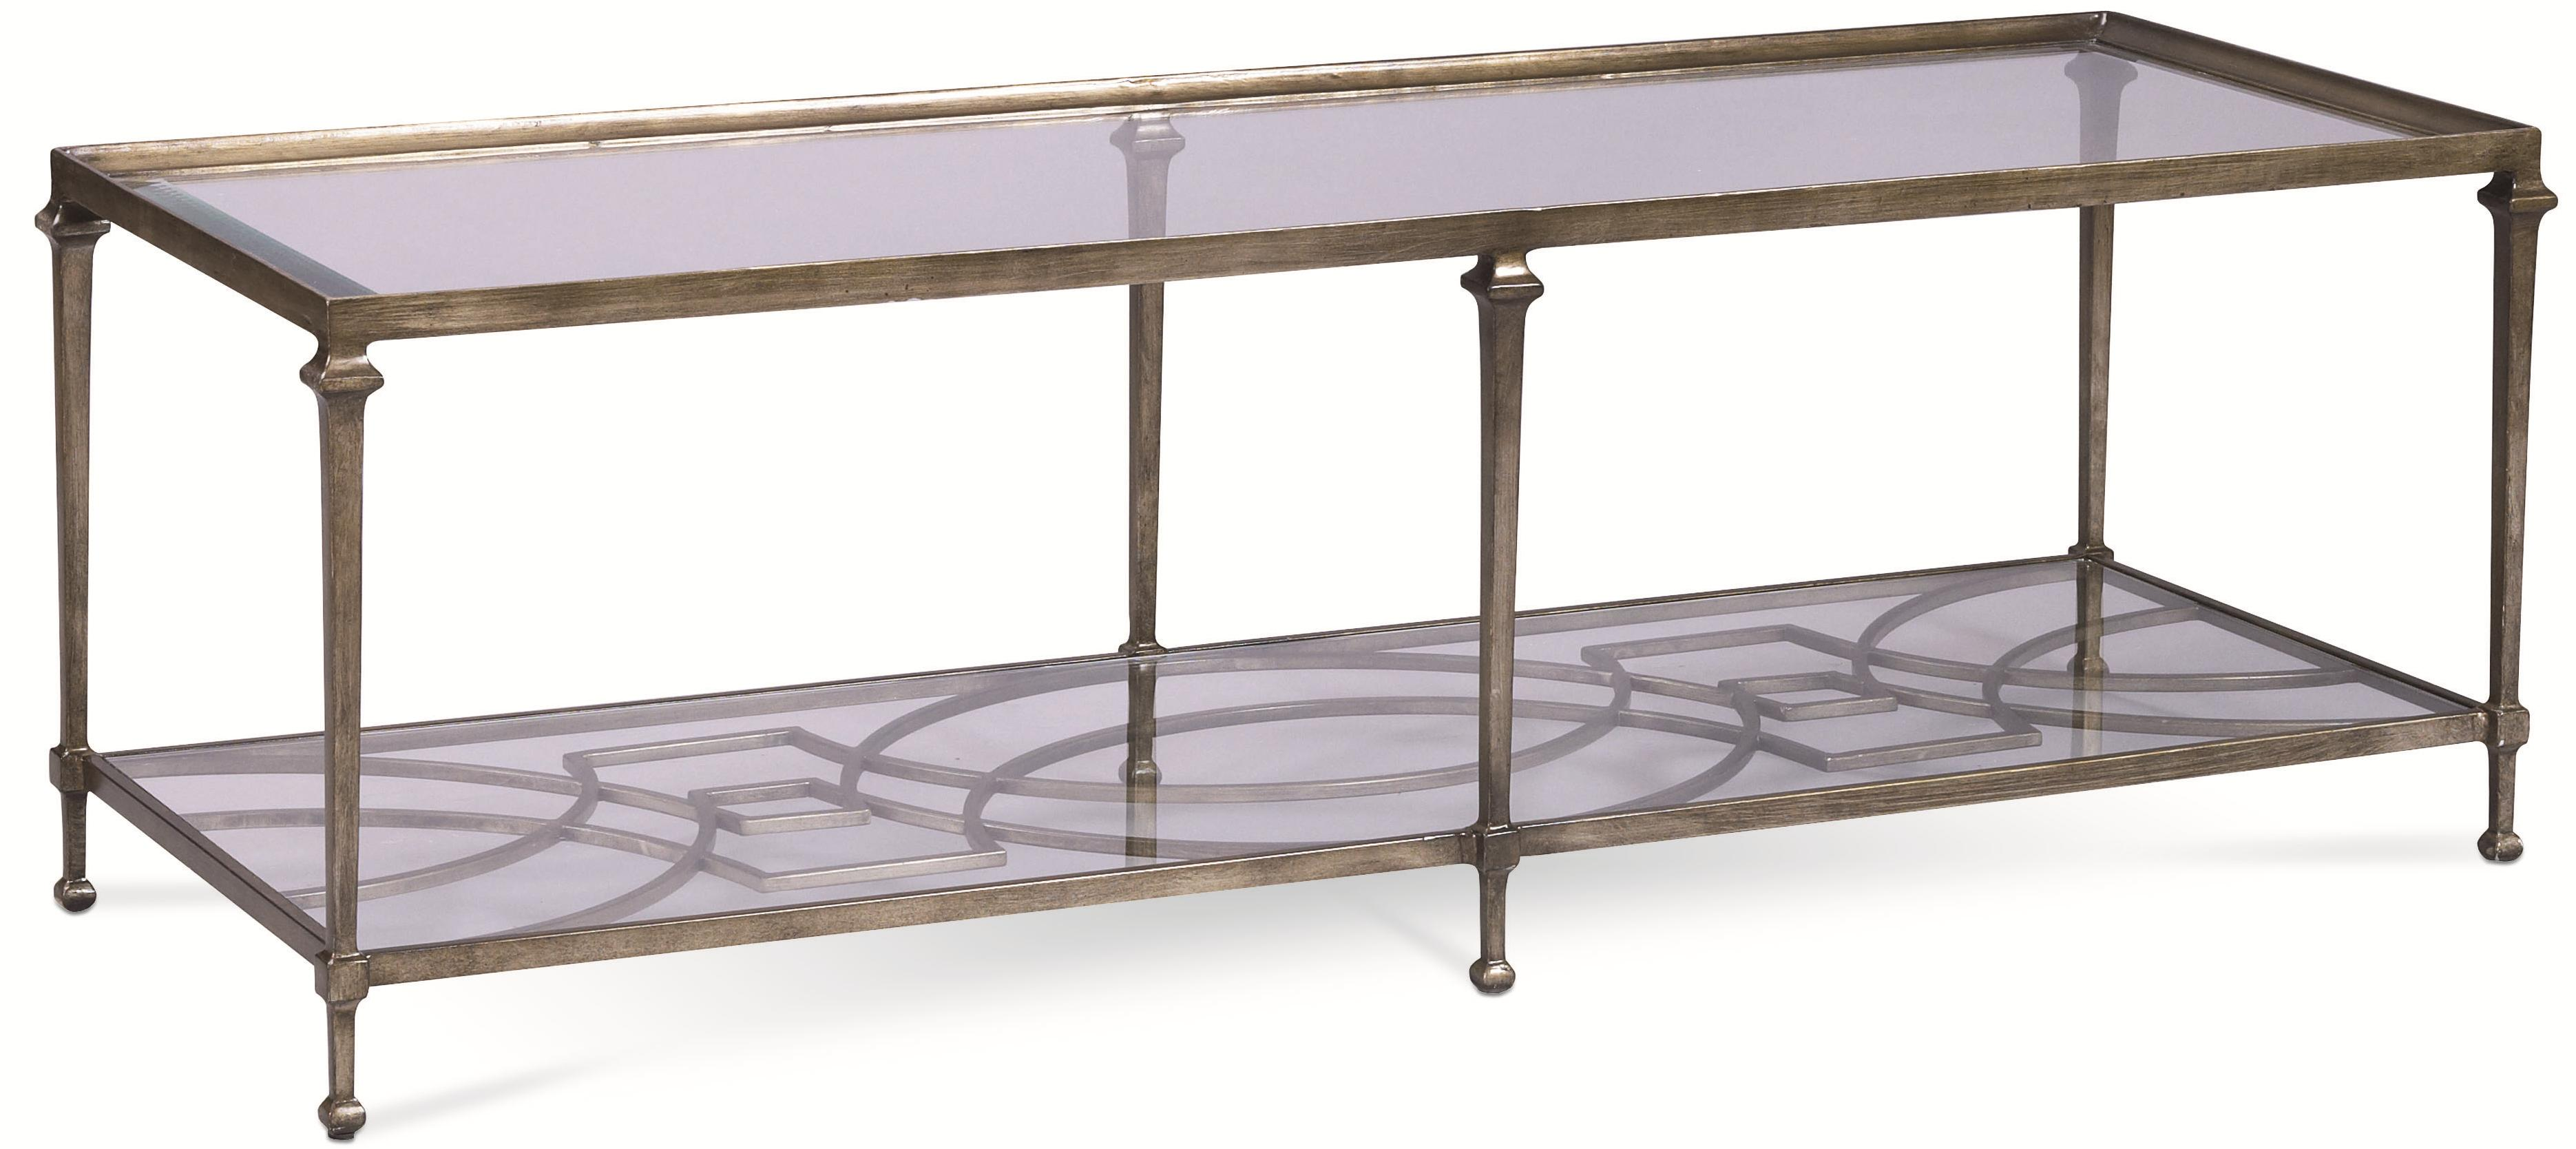 Thomasville Spellbound 111 Rectangular Coffee Table w